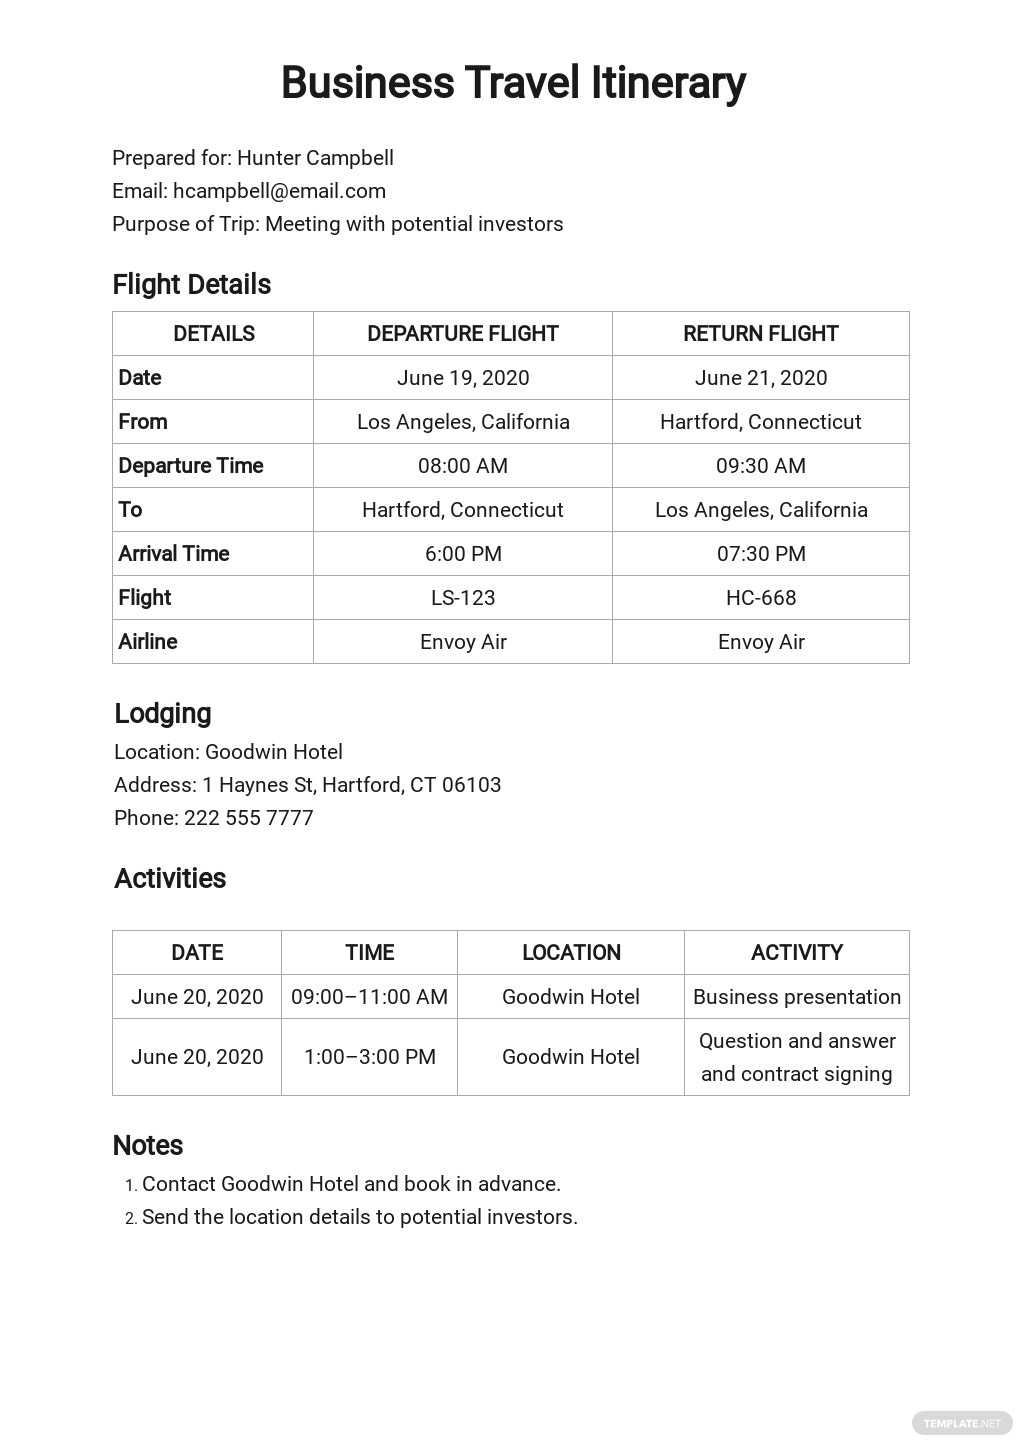 Sample Business Travel Itinerary Template